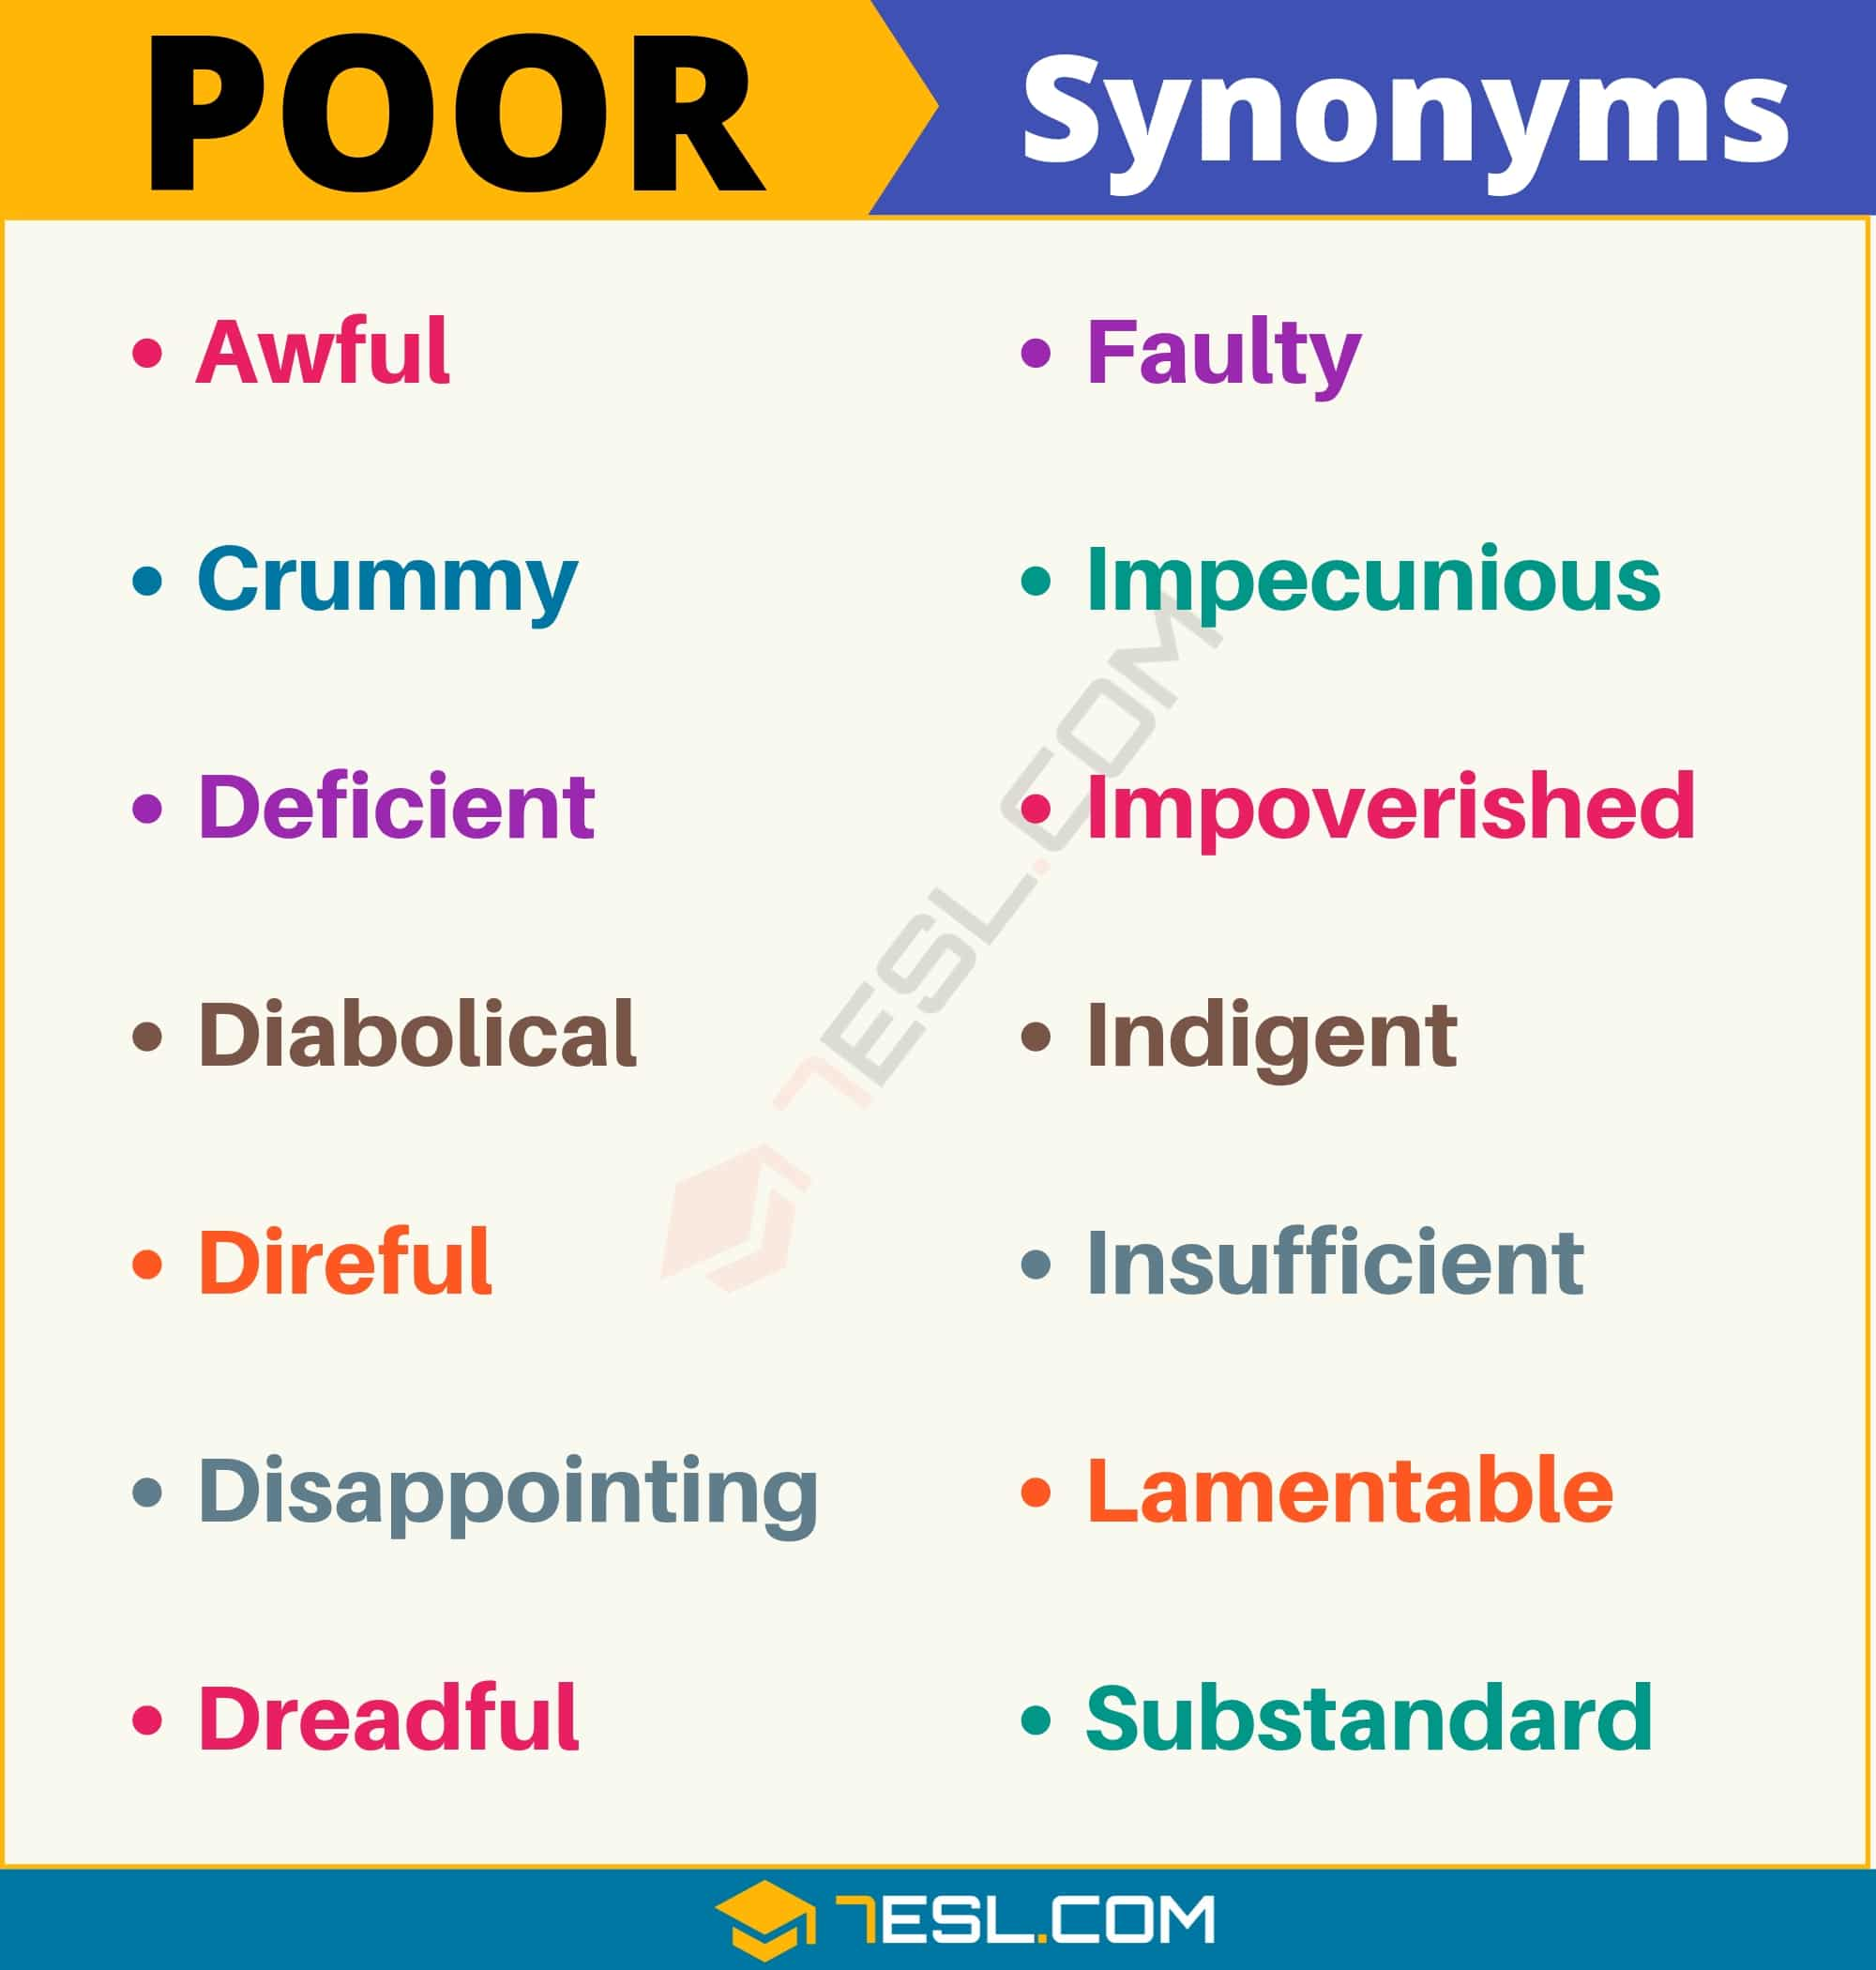 POOR Synonym: List of 14 Synonyms for Poor with Useful Examples